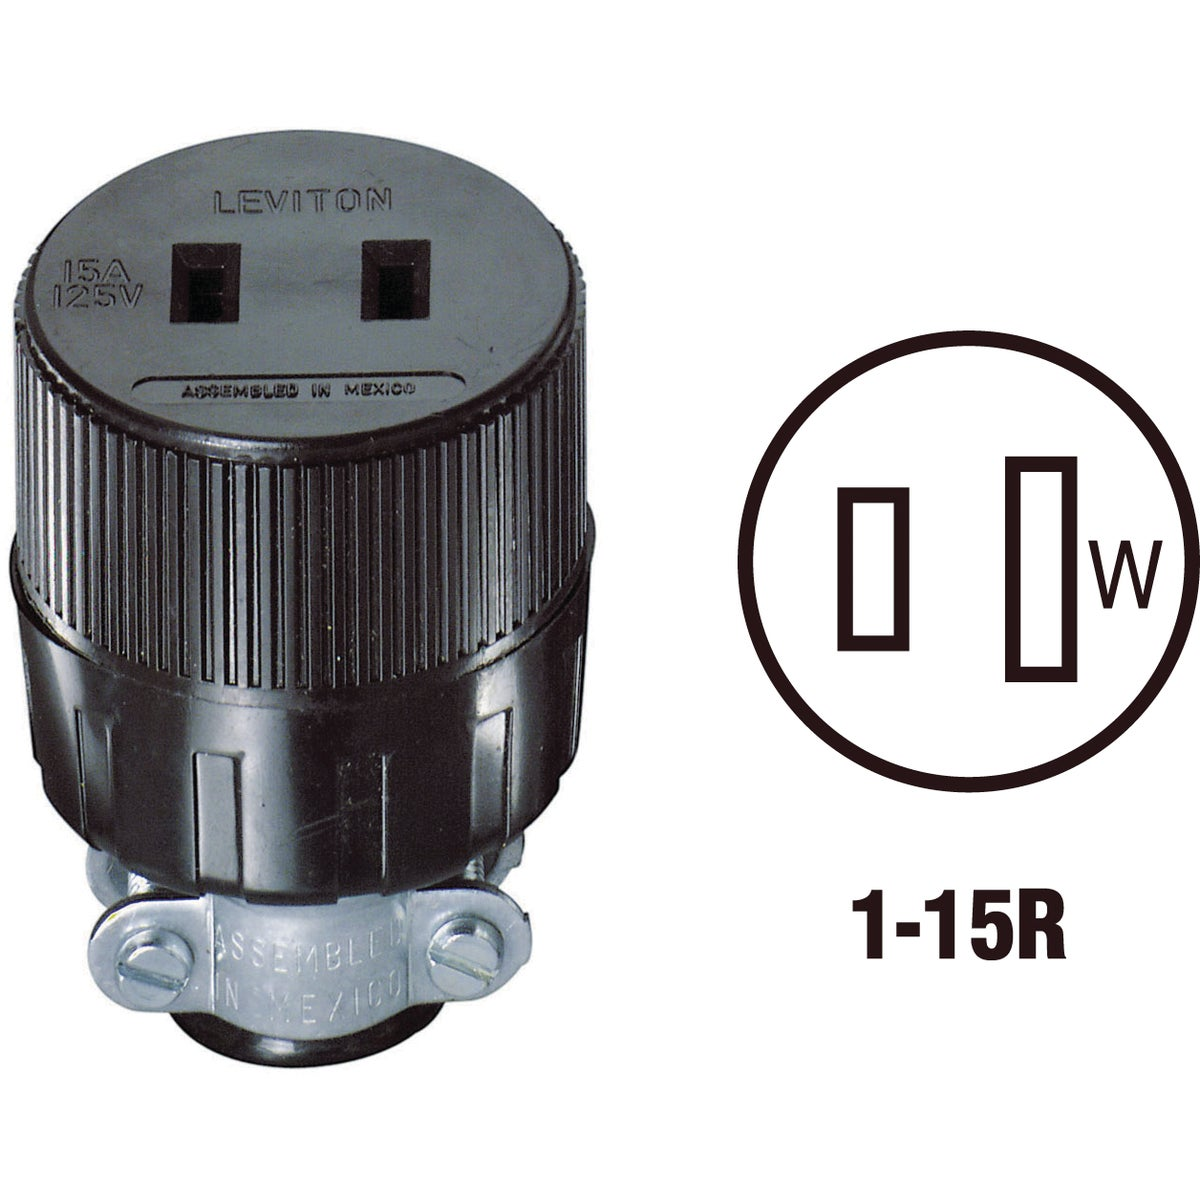 BLK CORD CONNECTOR - 875612 by Leviton Mfg Co